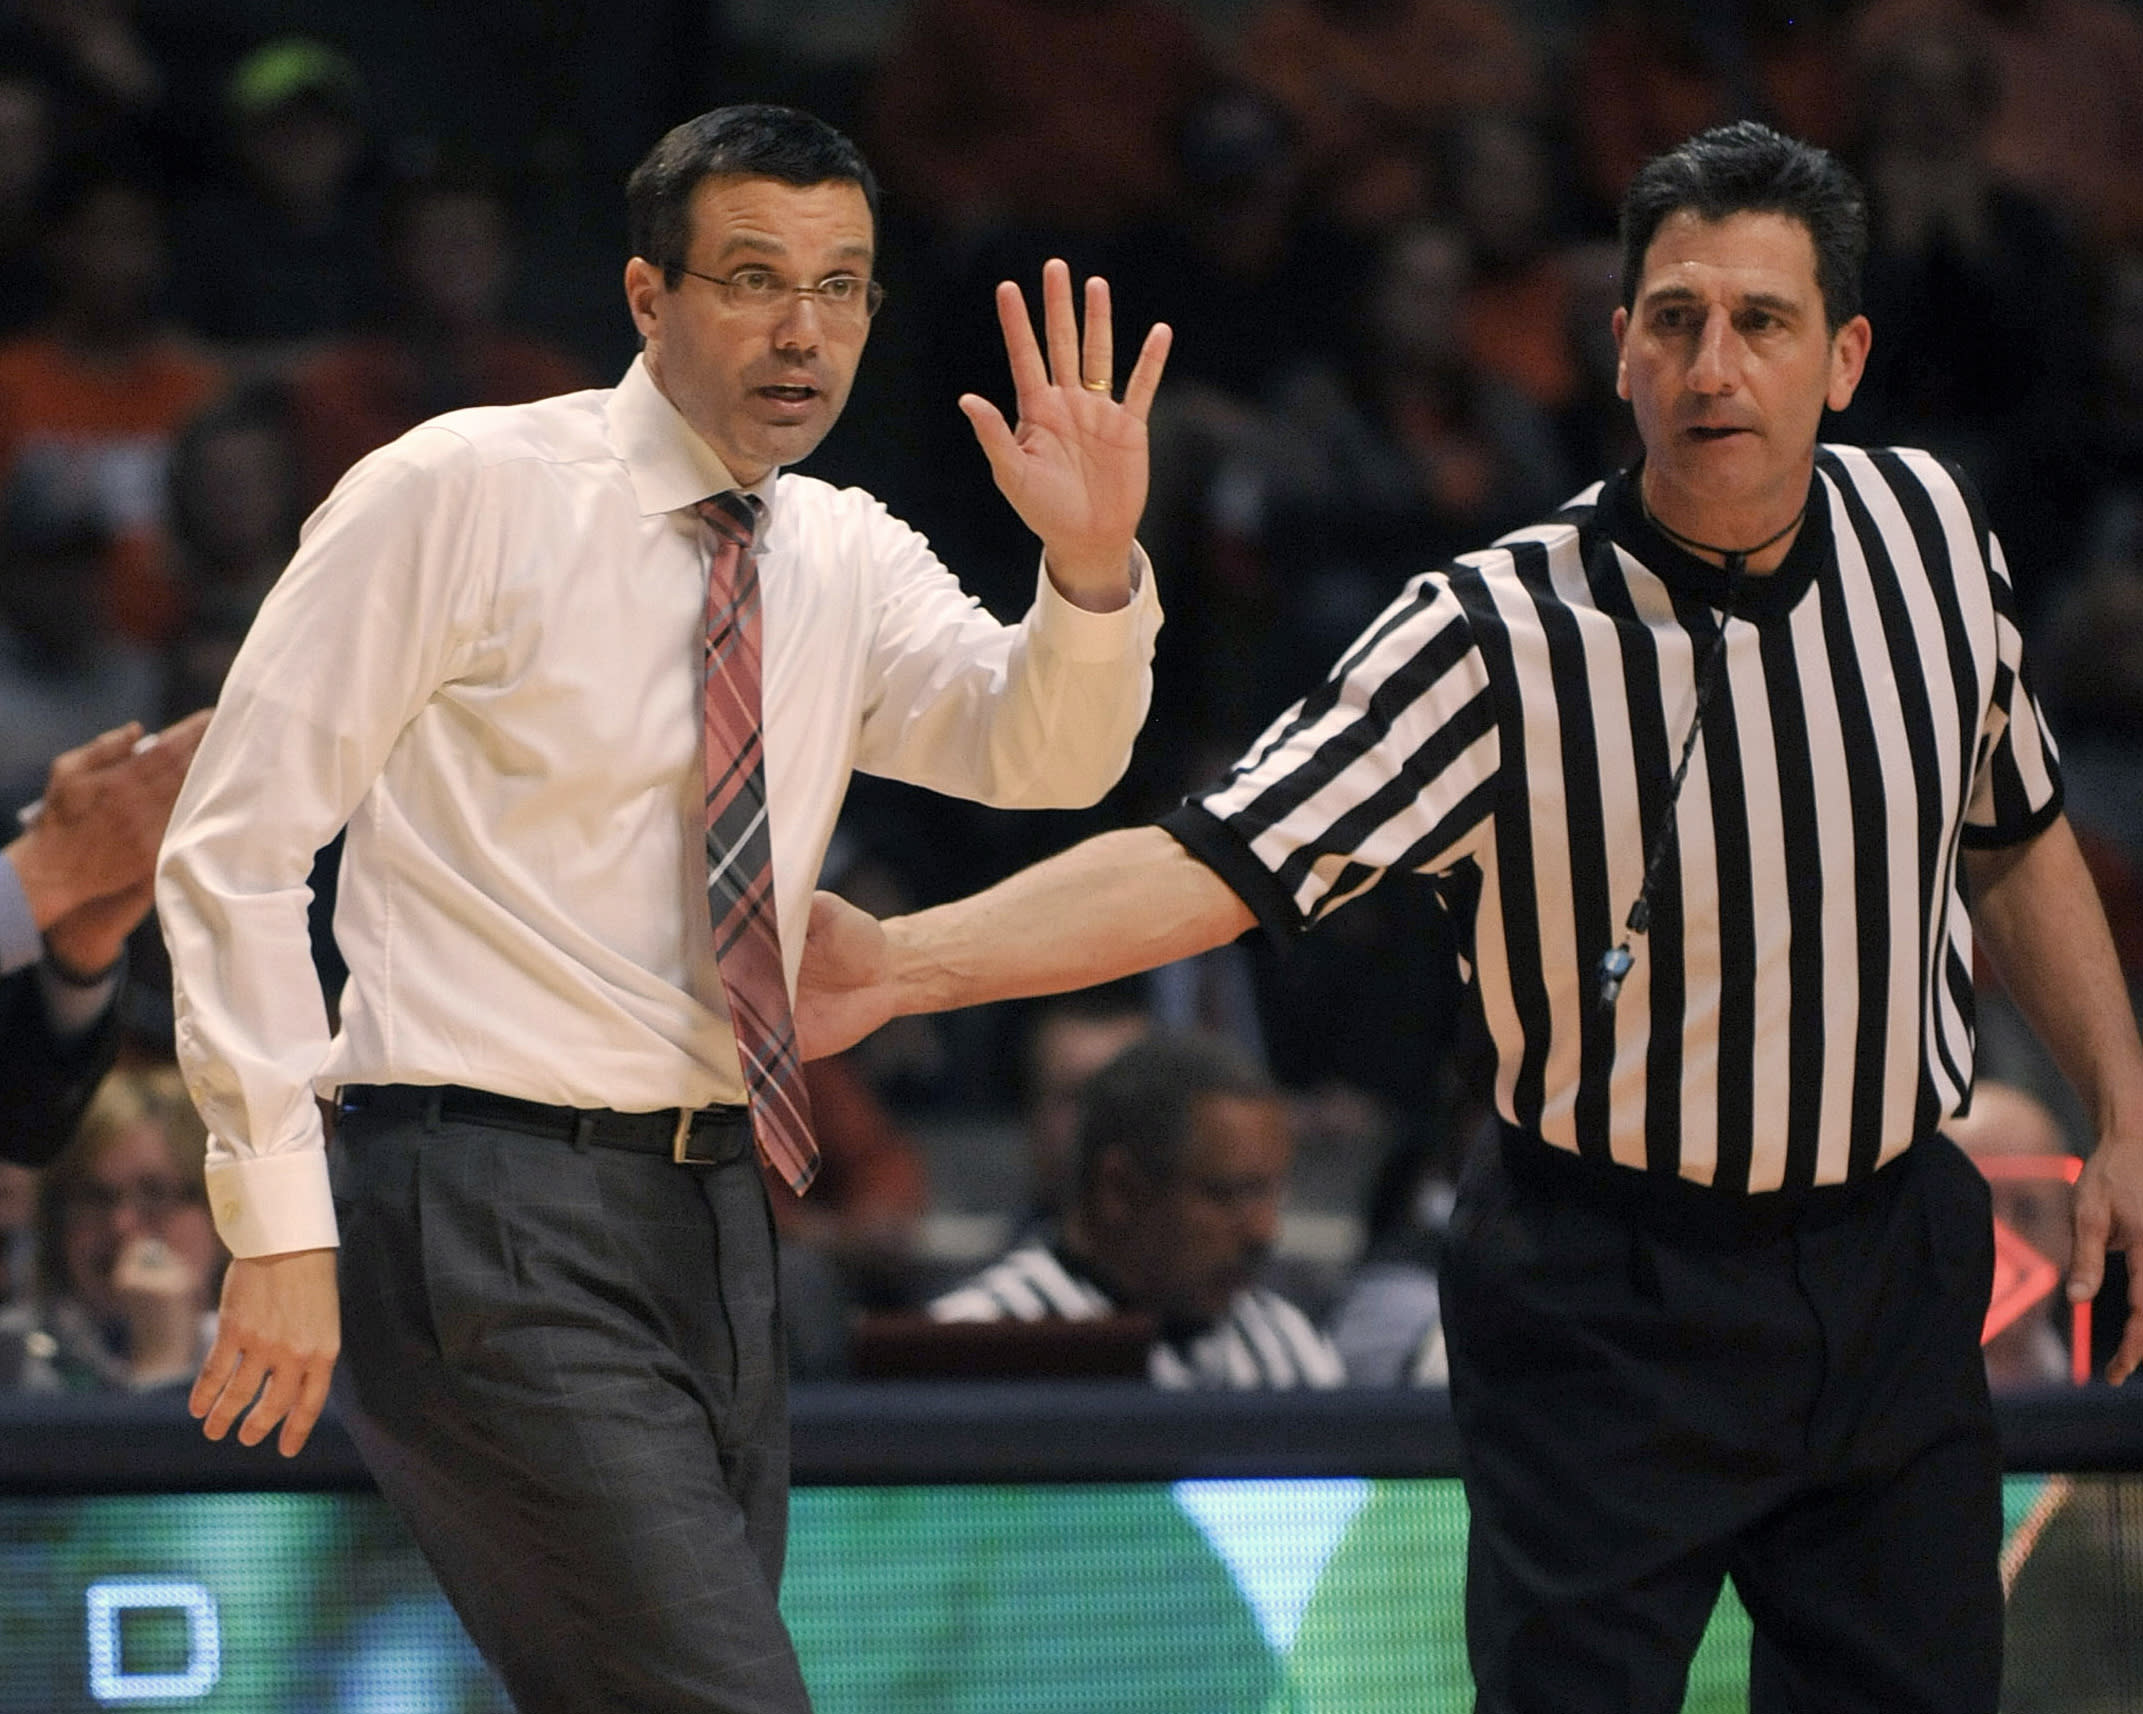 Huskers' Tim Miles optimistic despite loss of players, coach